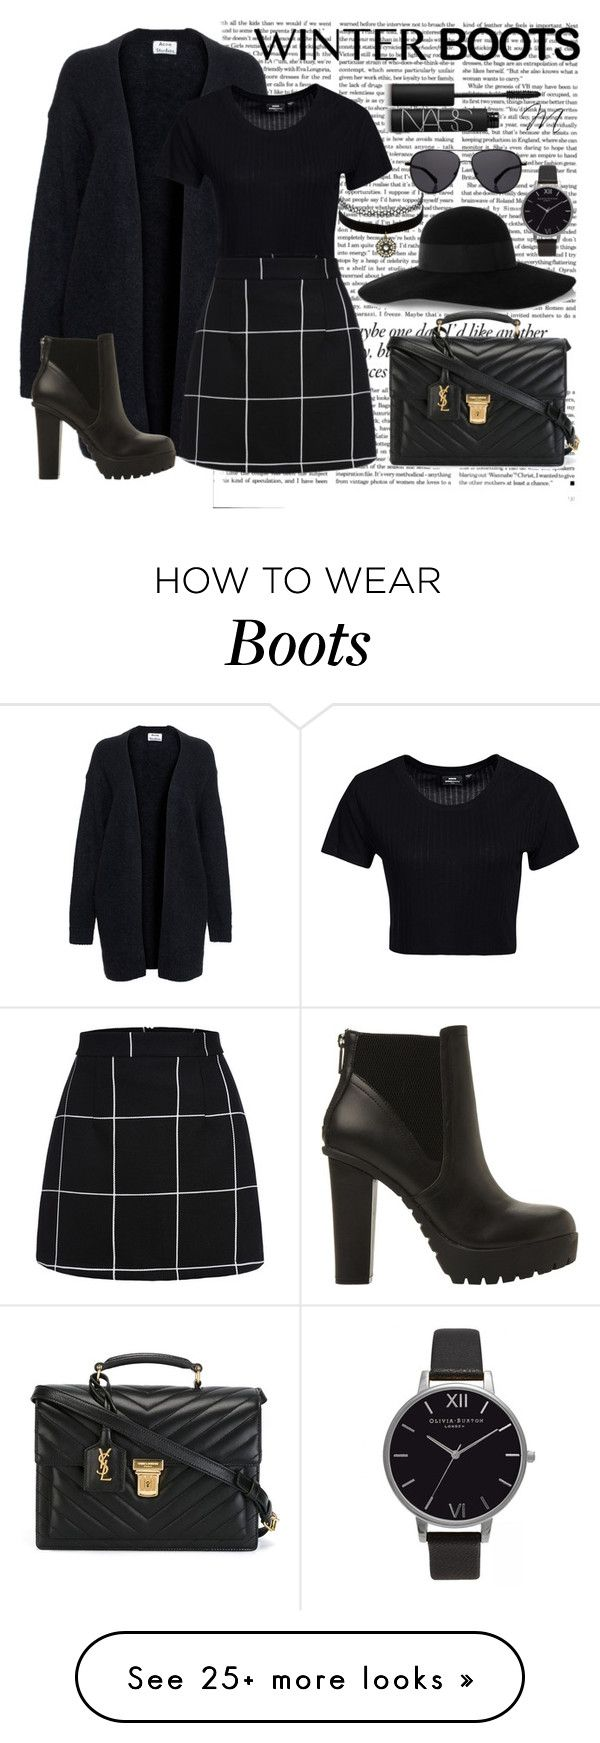 """Black"" by marilynn96 on Polyvore featuring Victoria Beckham, Eugenia Kim, Acne Studios, Dr. Denim, Steve Madden, Olivia Burton, Charlotte Russe, Yves Saint Laurent, The Row and NARS Cosmetics"